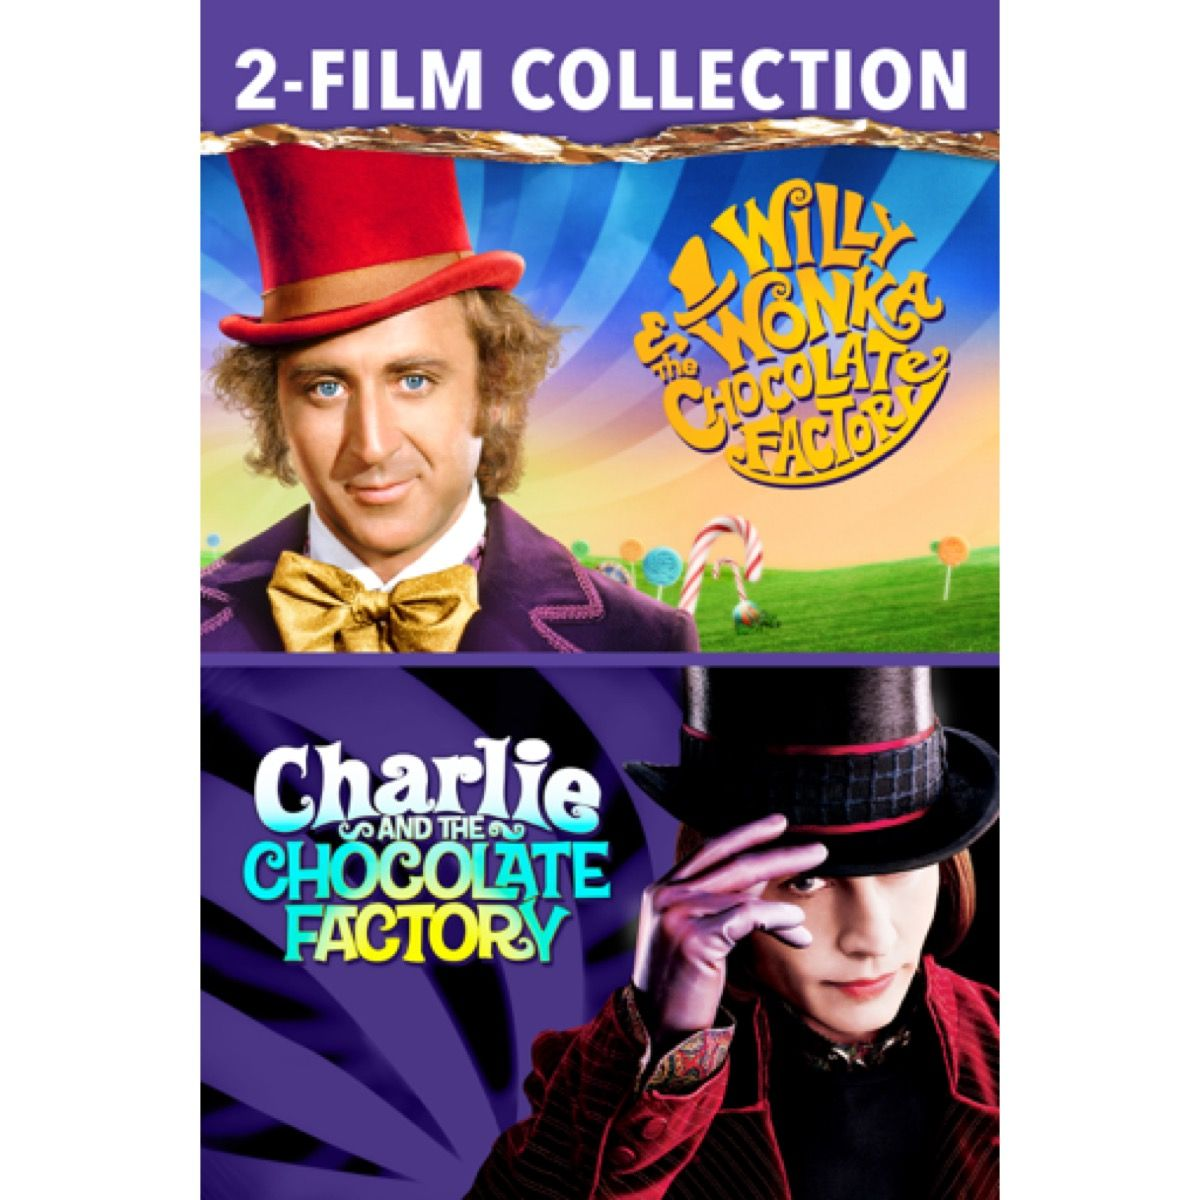 Watch Movie Online Charlie And The Chocolate Factory Free Download Full Hd Quality Johnny Depp Movies Chocolate Factory Good Movies